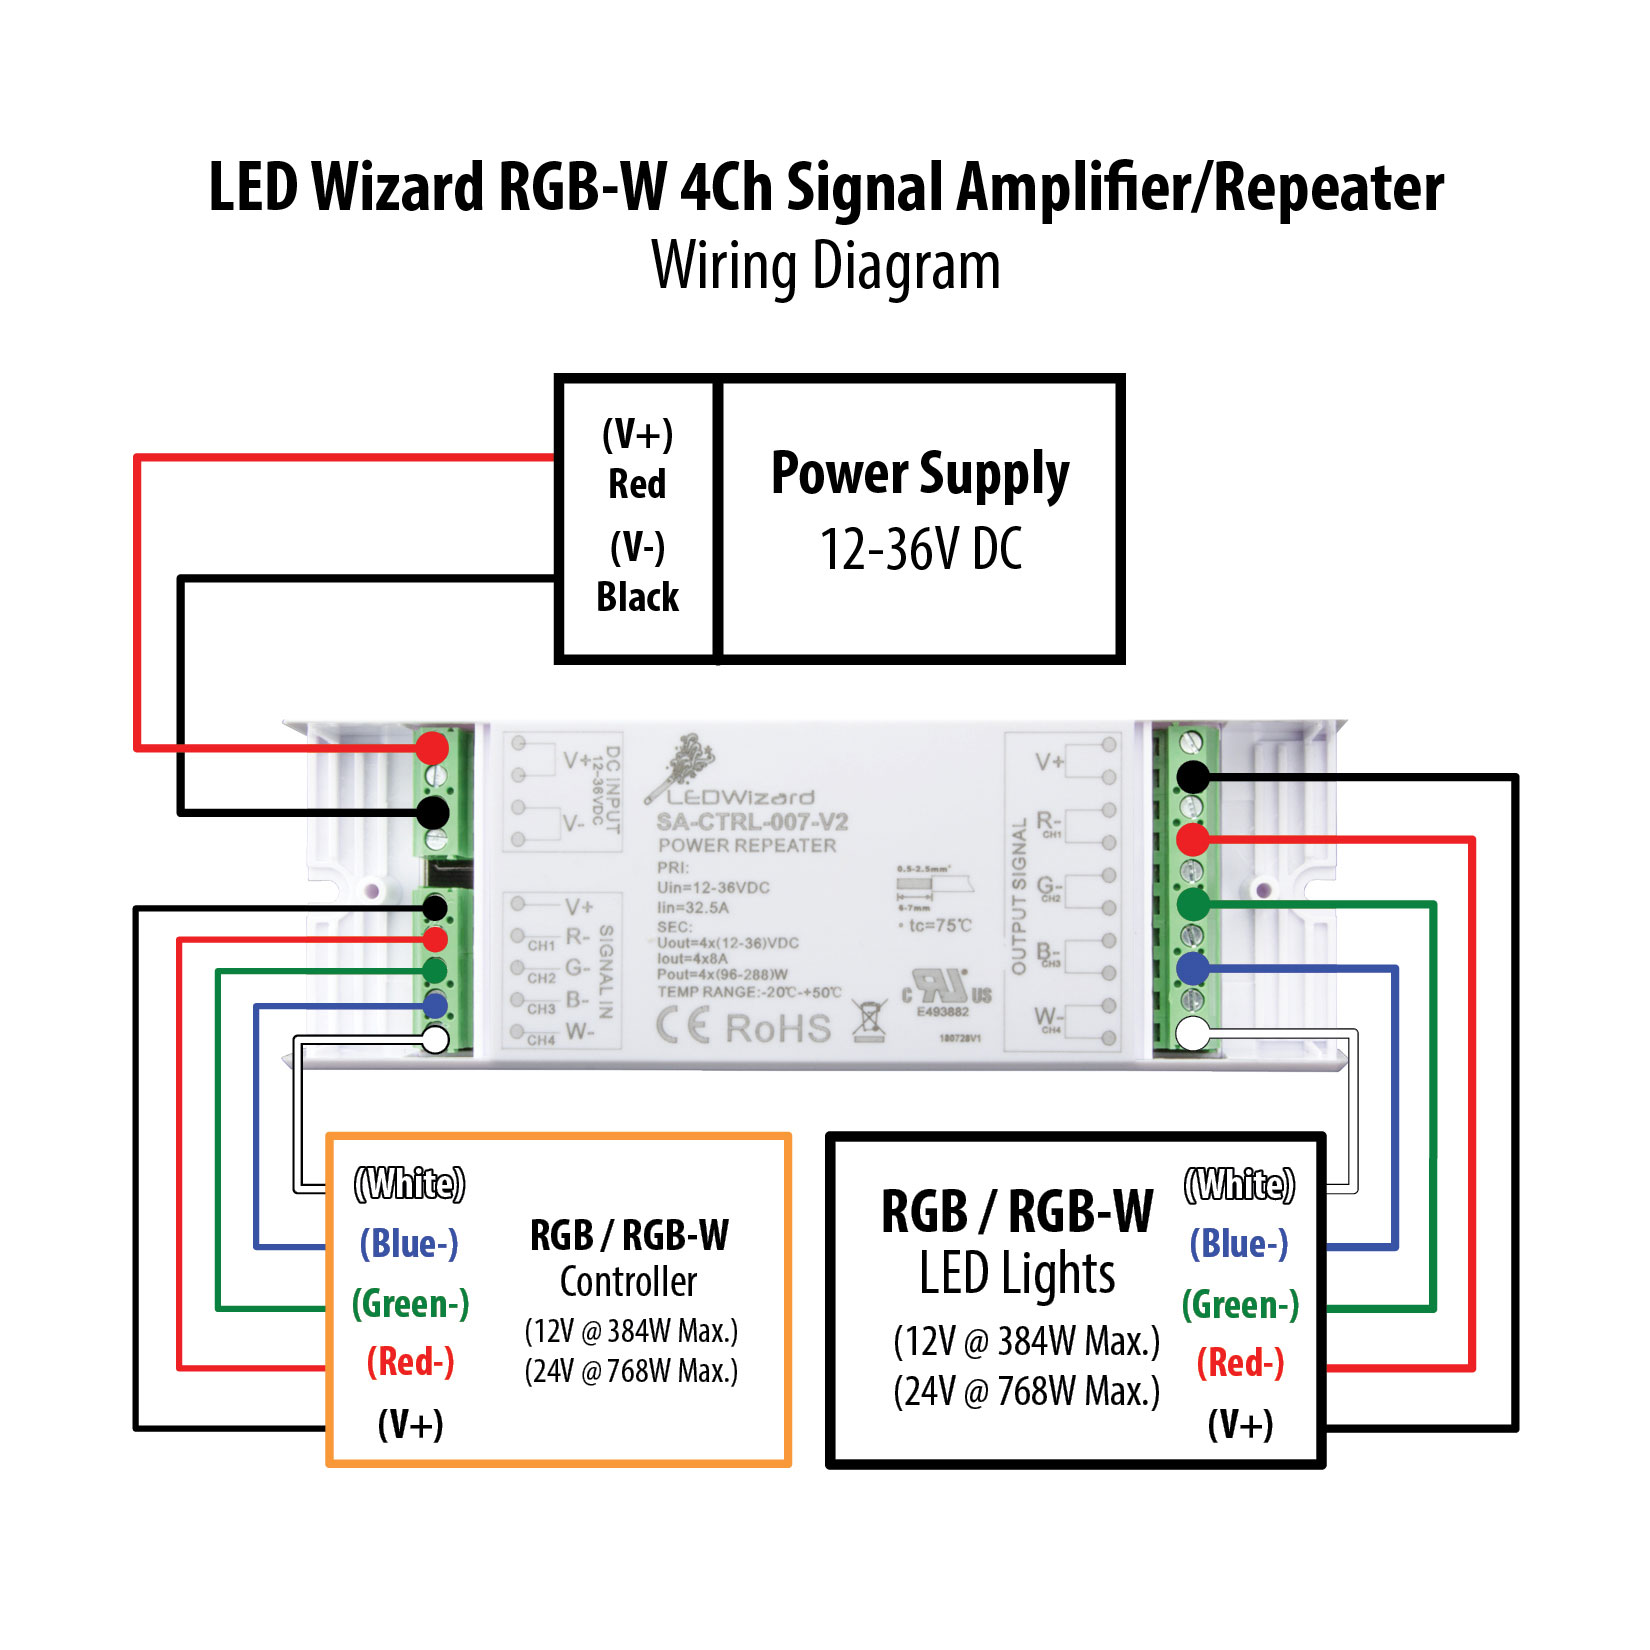 led sign wiring diagram led wizard rgb signal amplifier/repeater